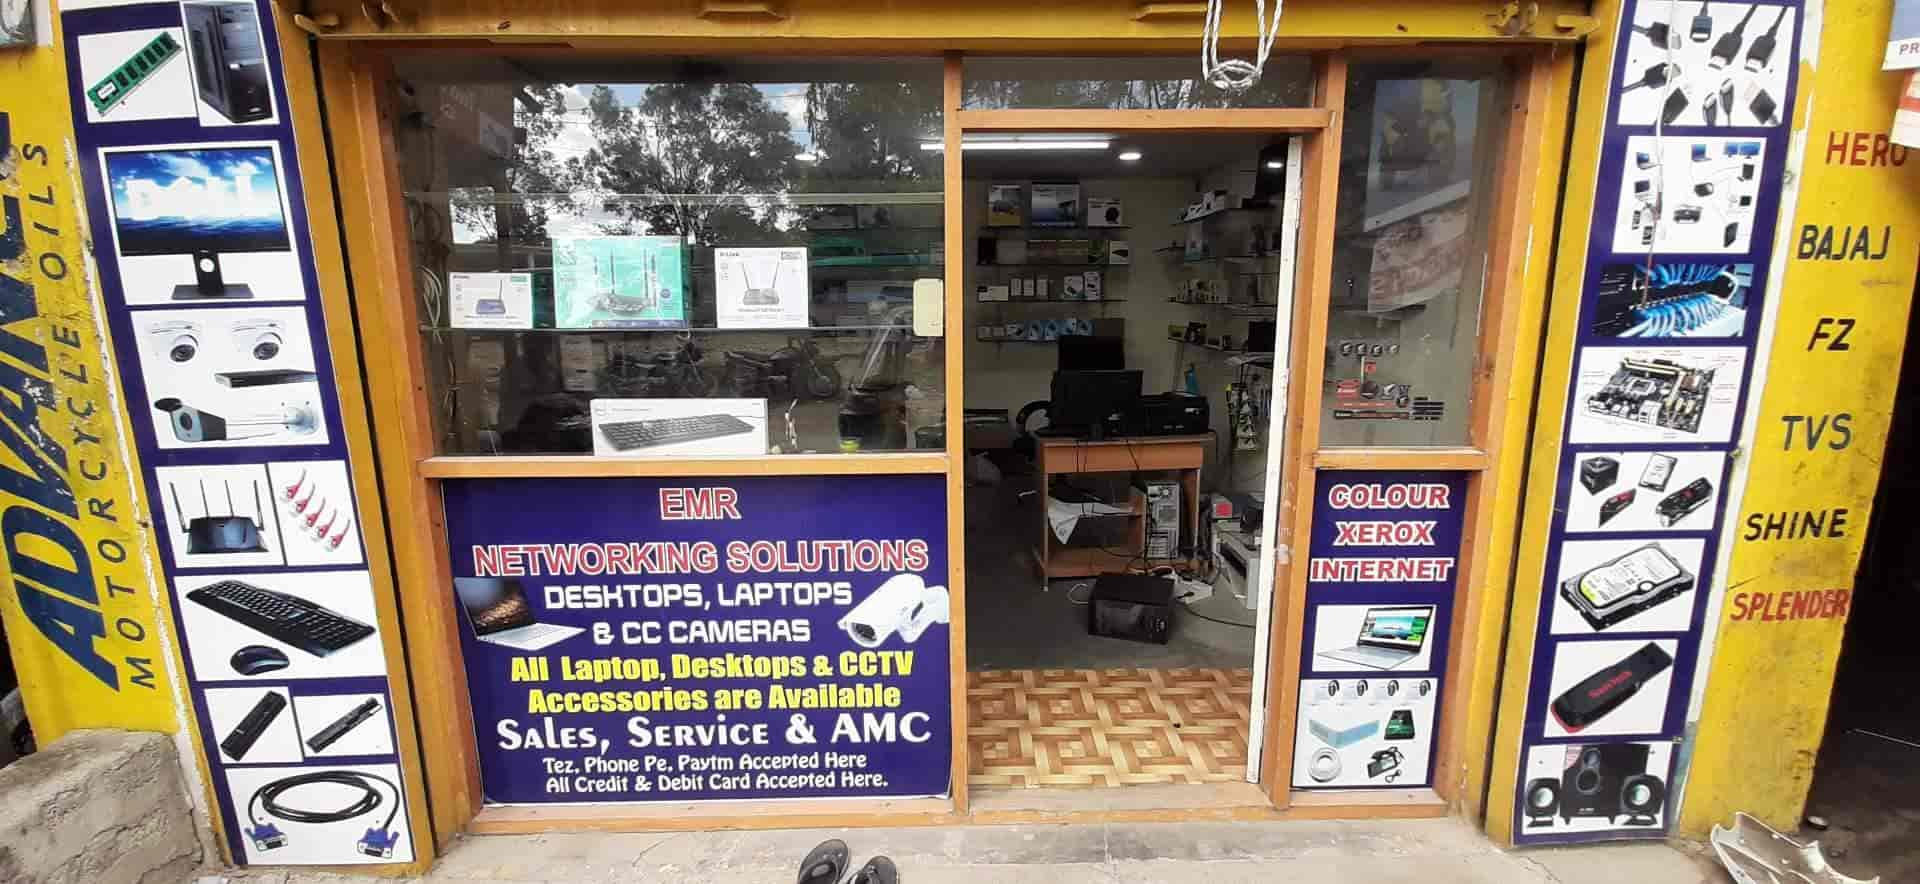 Emr Networking Solutions, Kondapur - Computer Repair & Services in